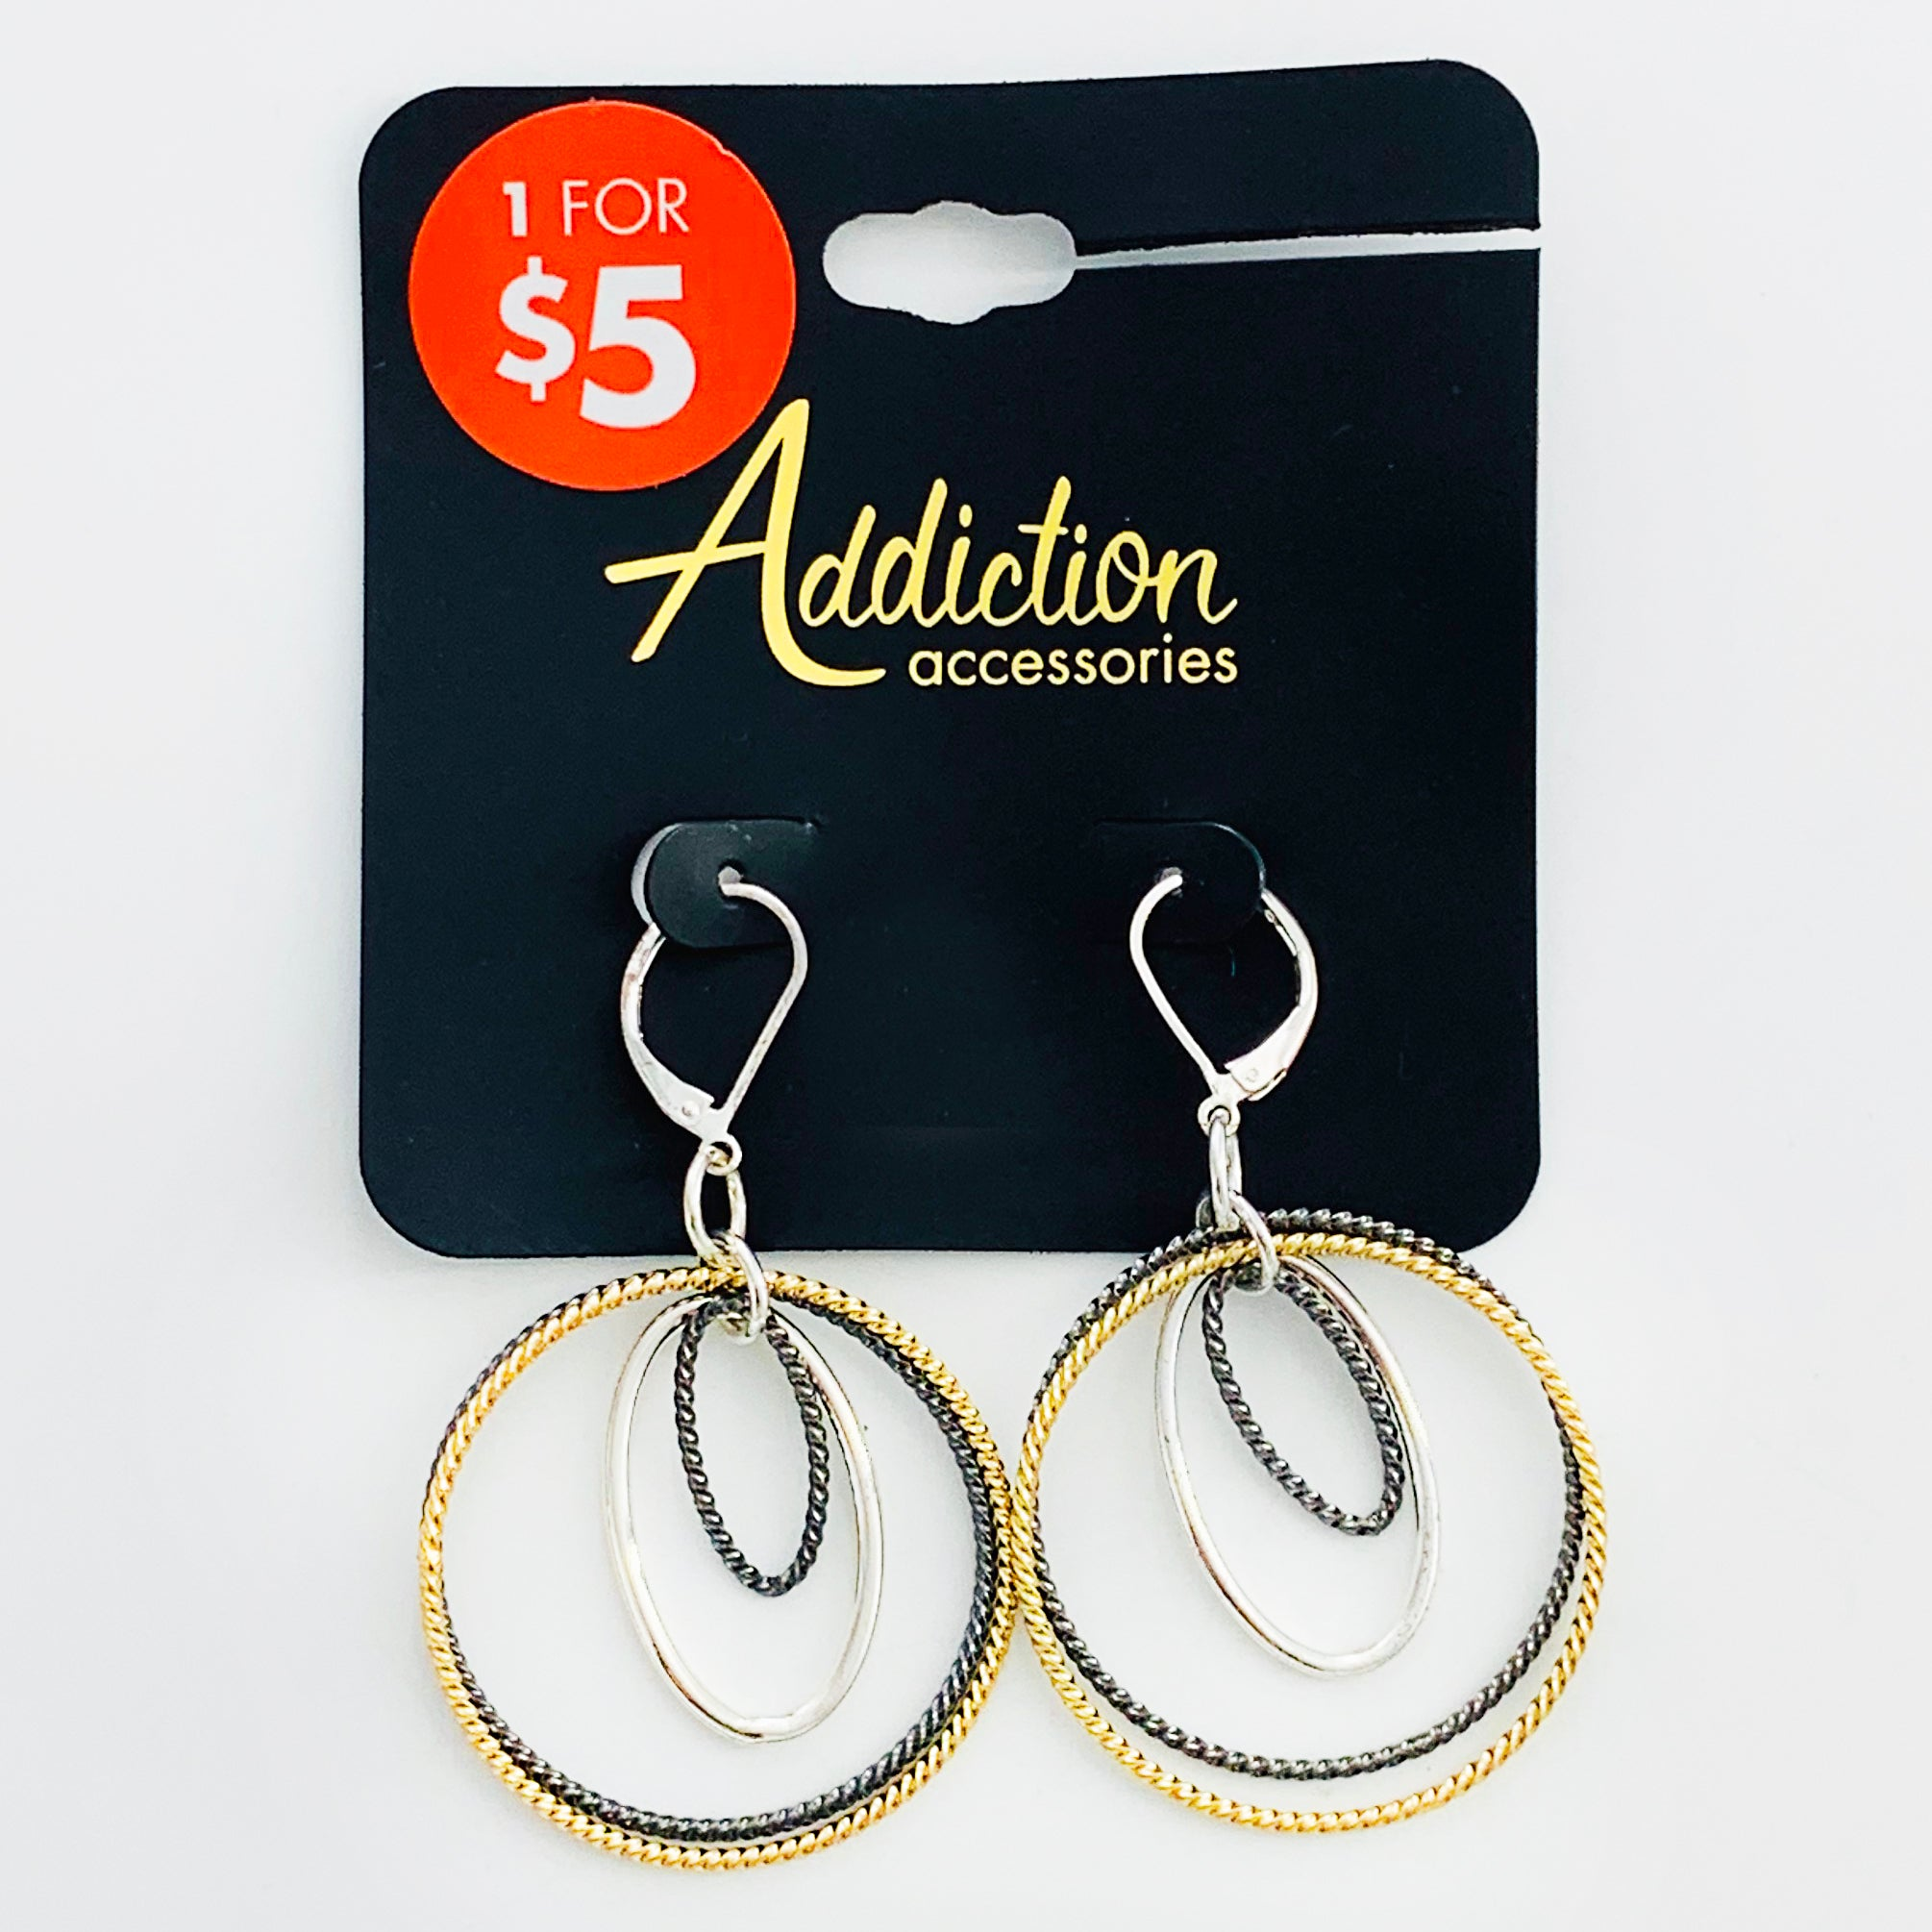 Hoop earrings in silver, gold, and grey